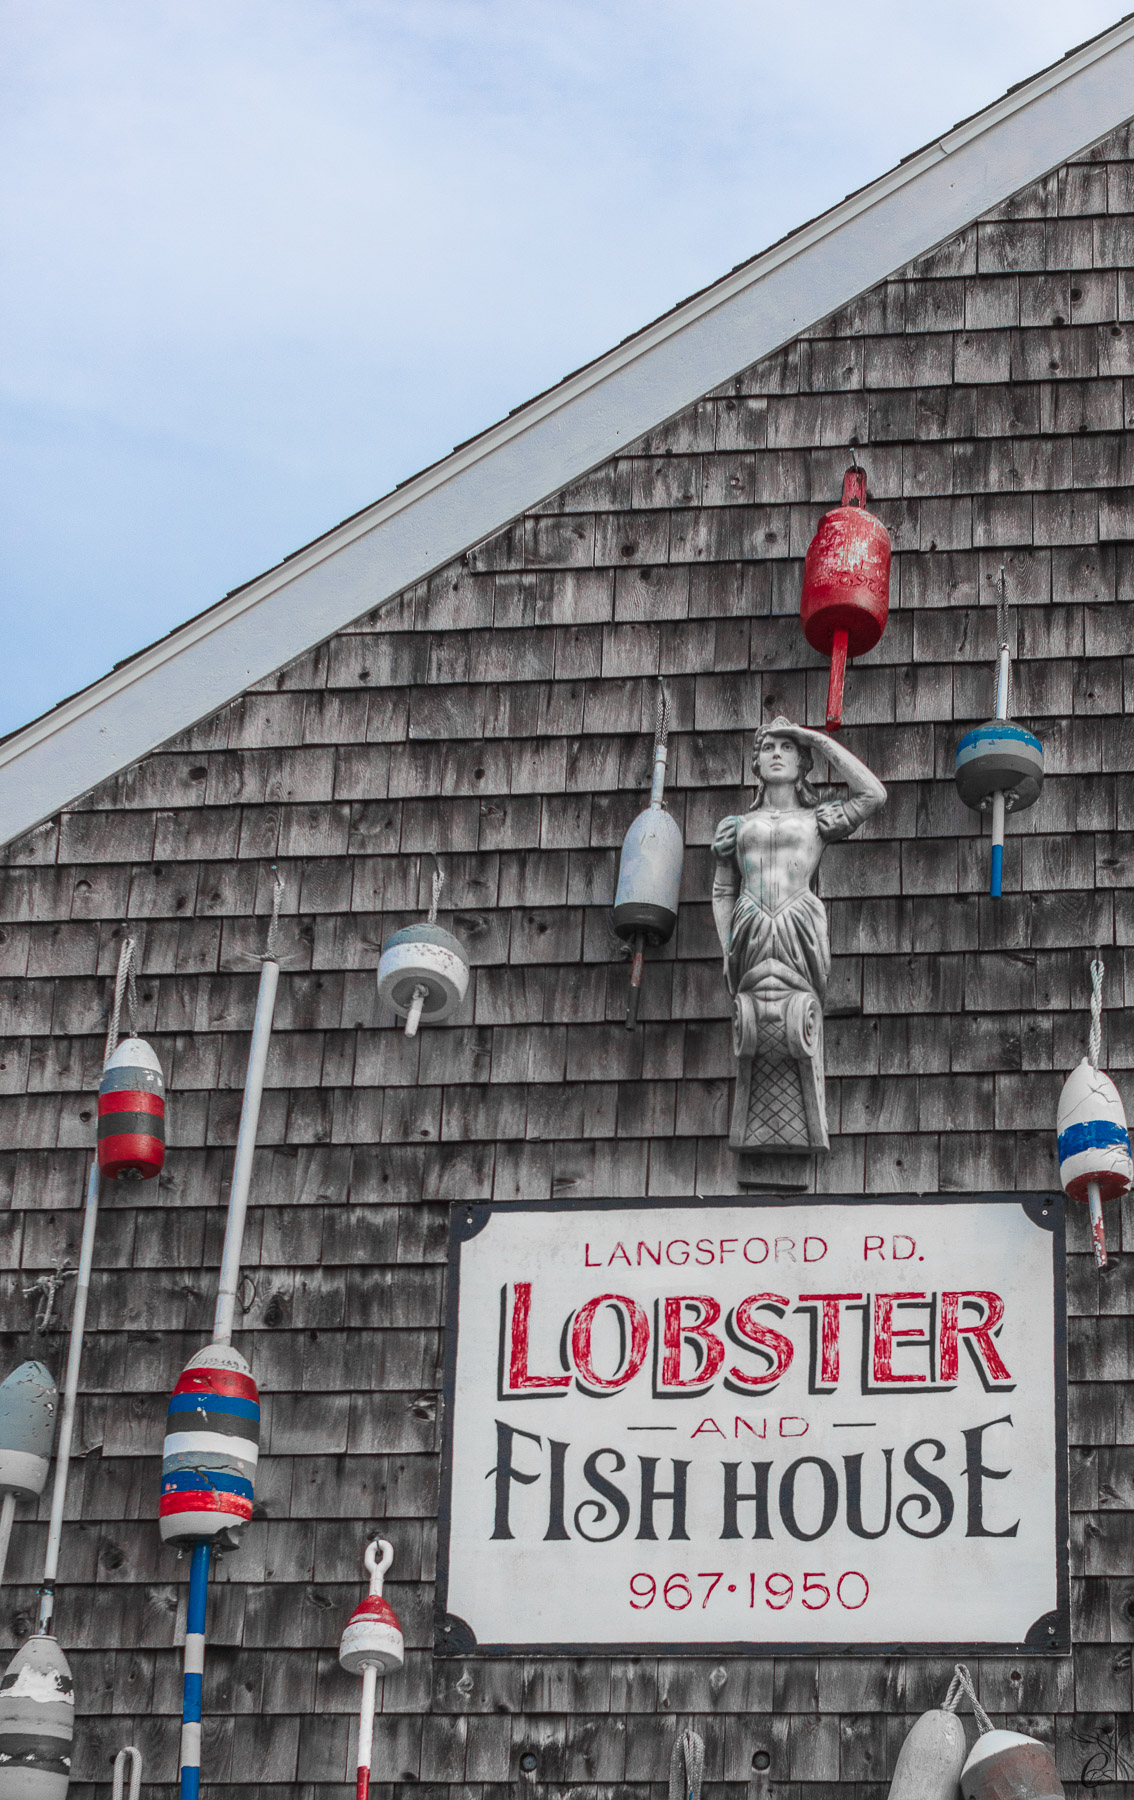 Lobster & Fish House